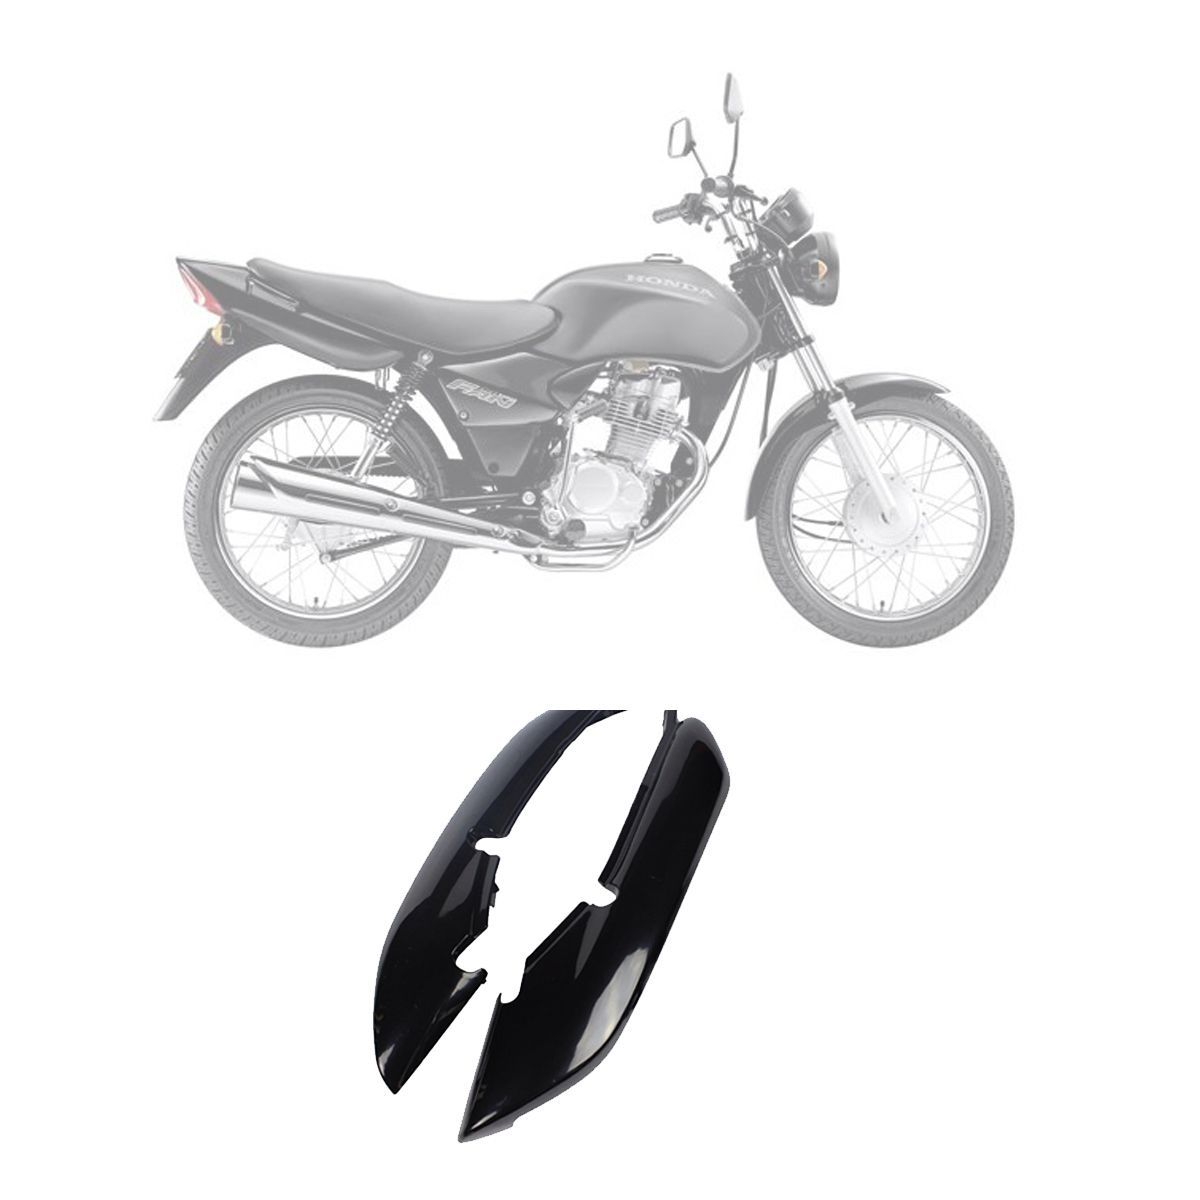 Rabeta Honda CG Fan 125 2005 à 2008 - Preto - Carenagem Pro Tork